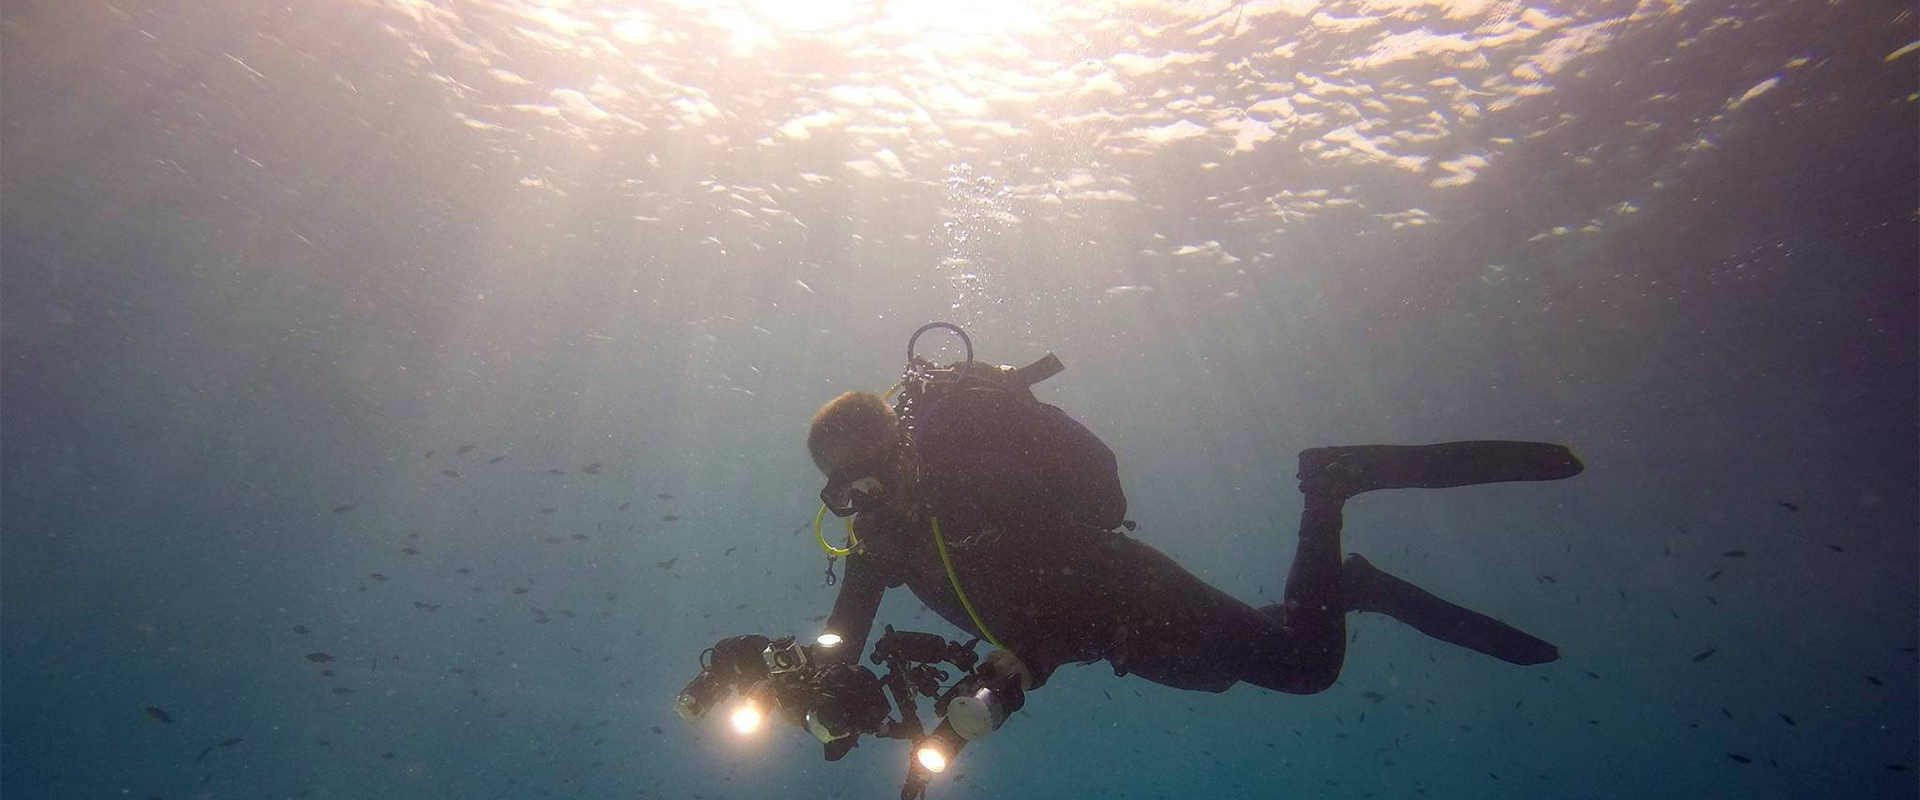 ngue_commercial-diving_rd-001